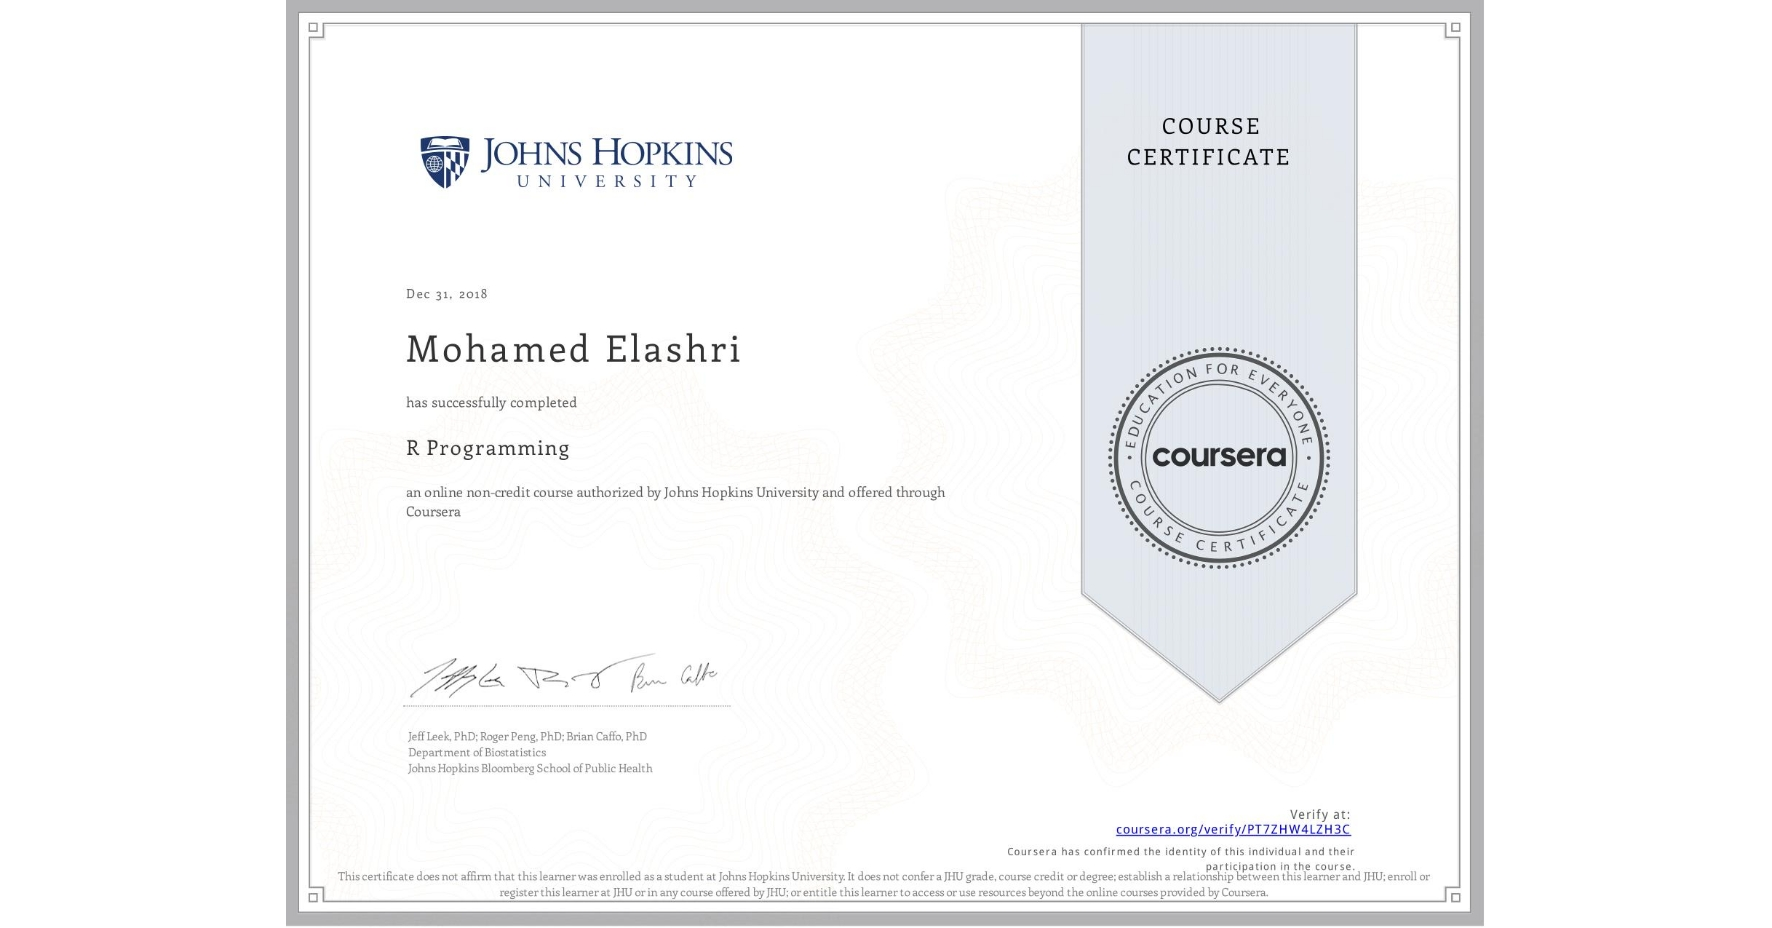 View certificate for Mohamed Elashri, R Programming, an online non-credit course authorized by Johns Hopkins University and offered through Coursera